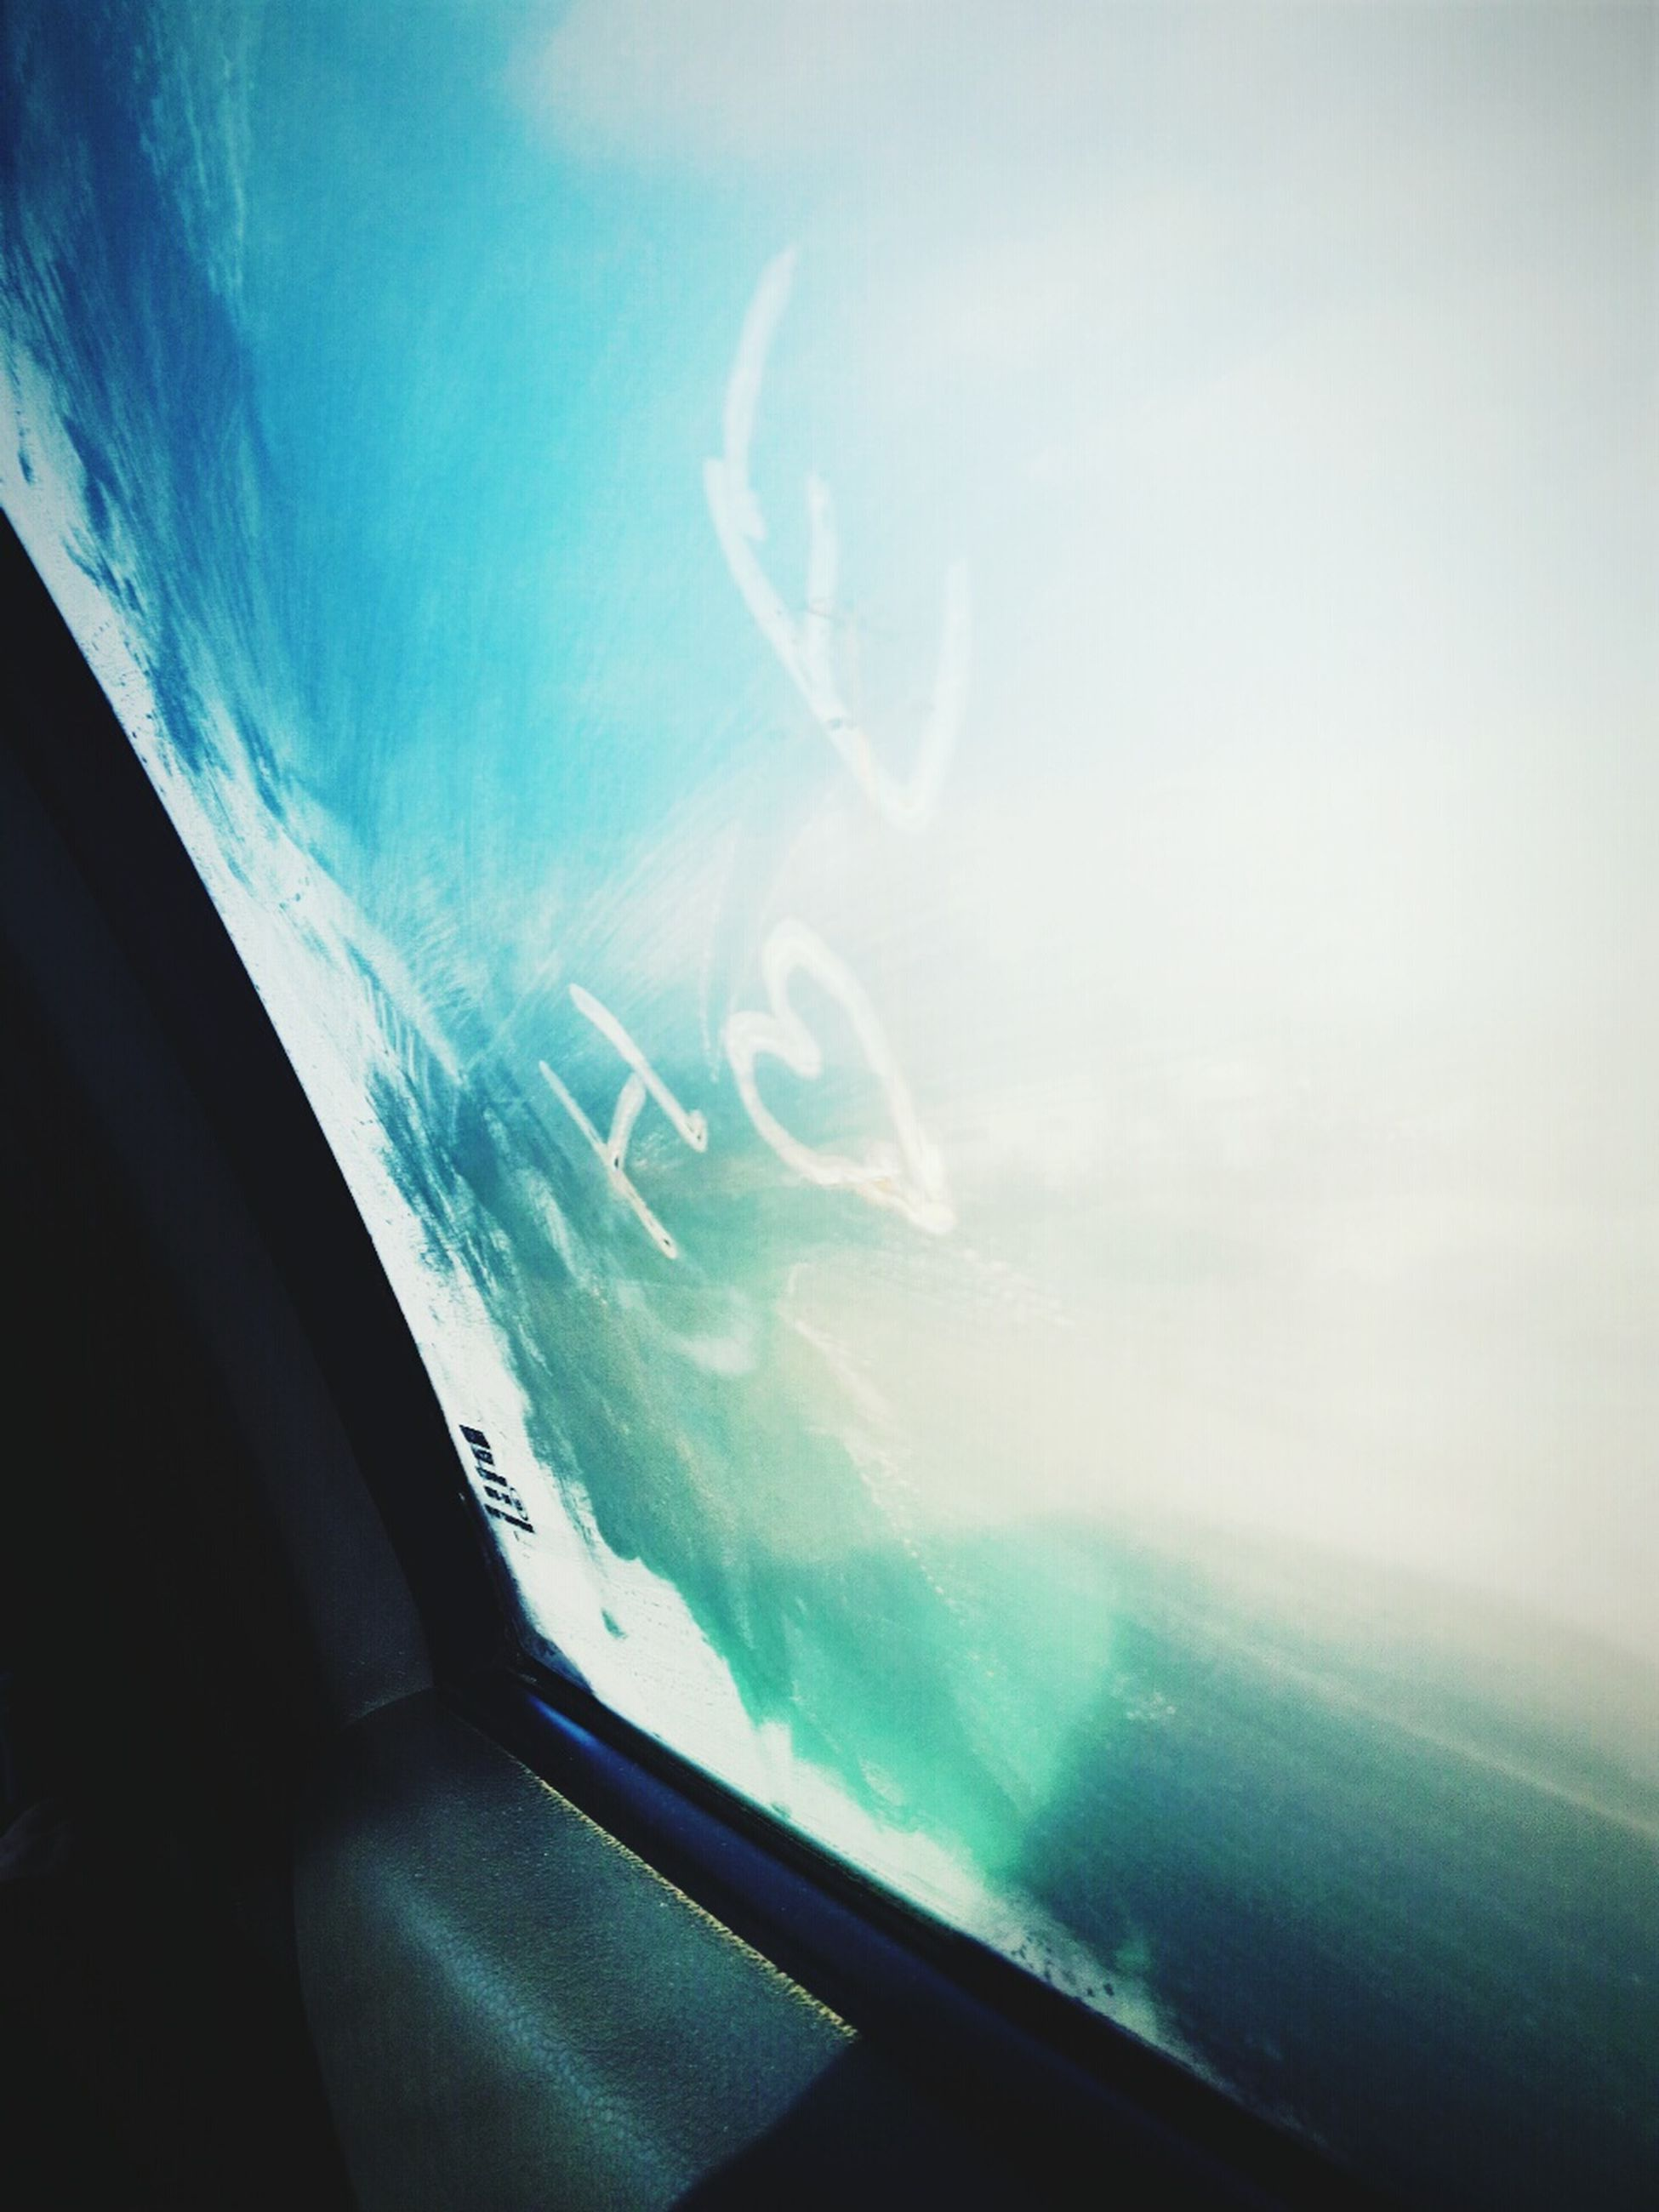 transportation, airplane, vehicle interior, window, mode of transport, glass - material, transparent, air vehicle, sky, blue, part of, aircraft wing, cropped, travel, flying, cloud - sky, windshield, aerial view, on the move, nature